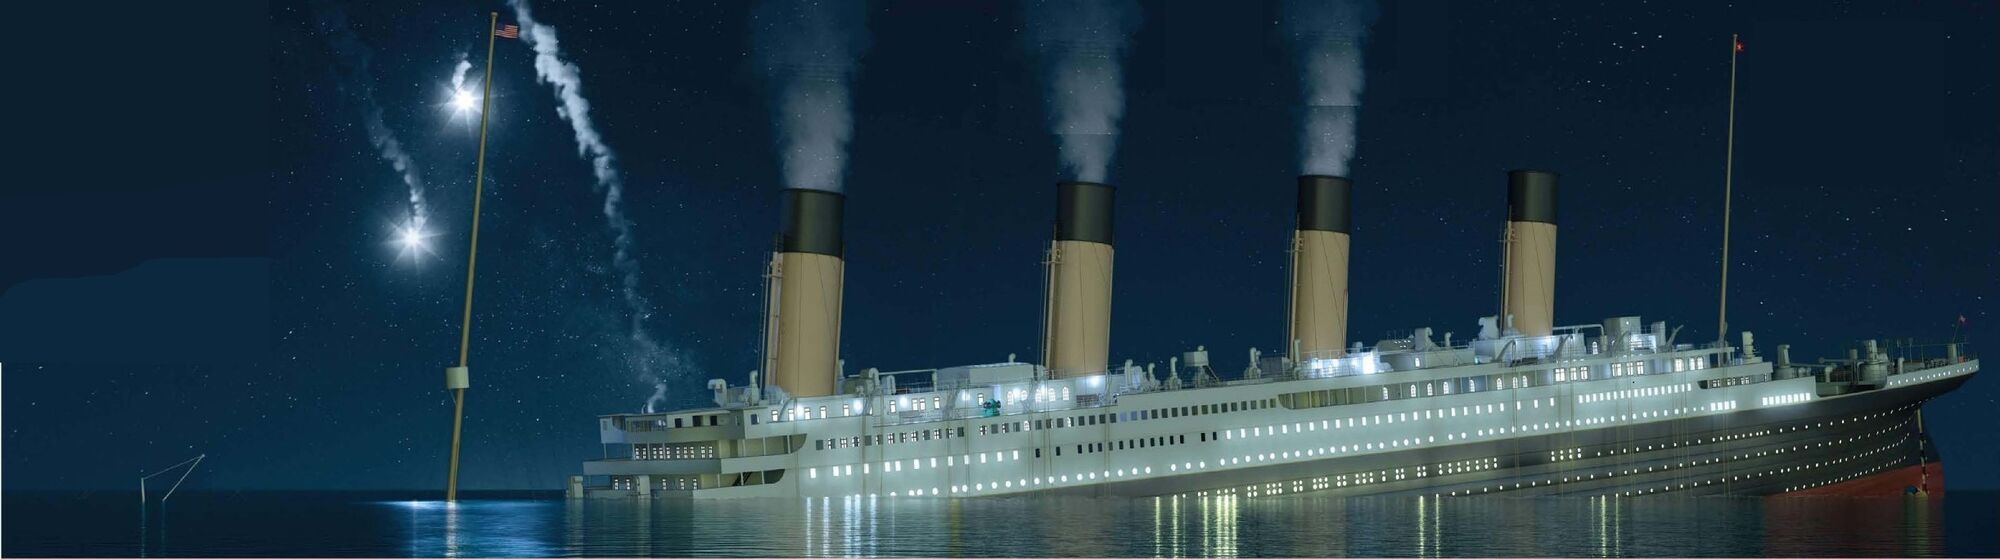 sinking of the titanic titanic wiki fandom powered by